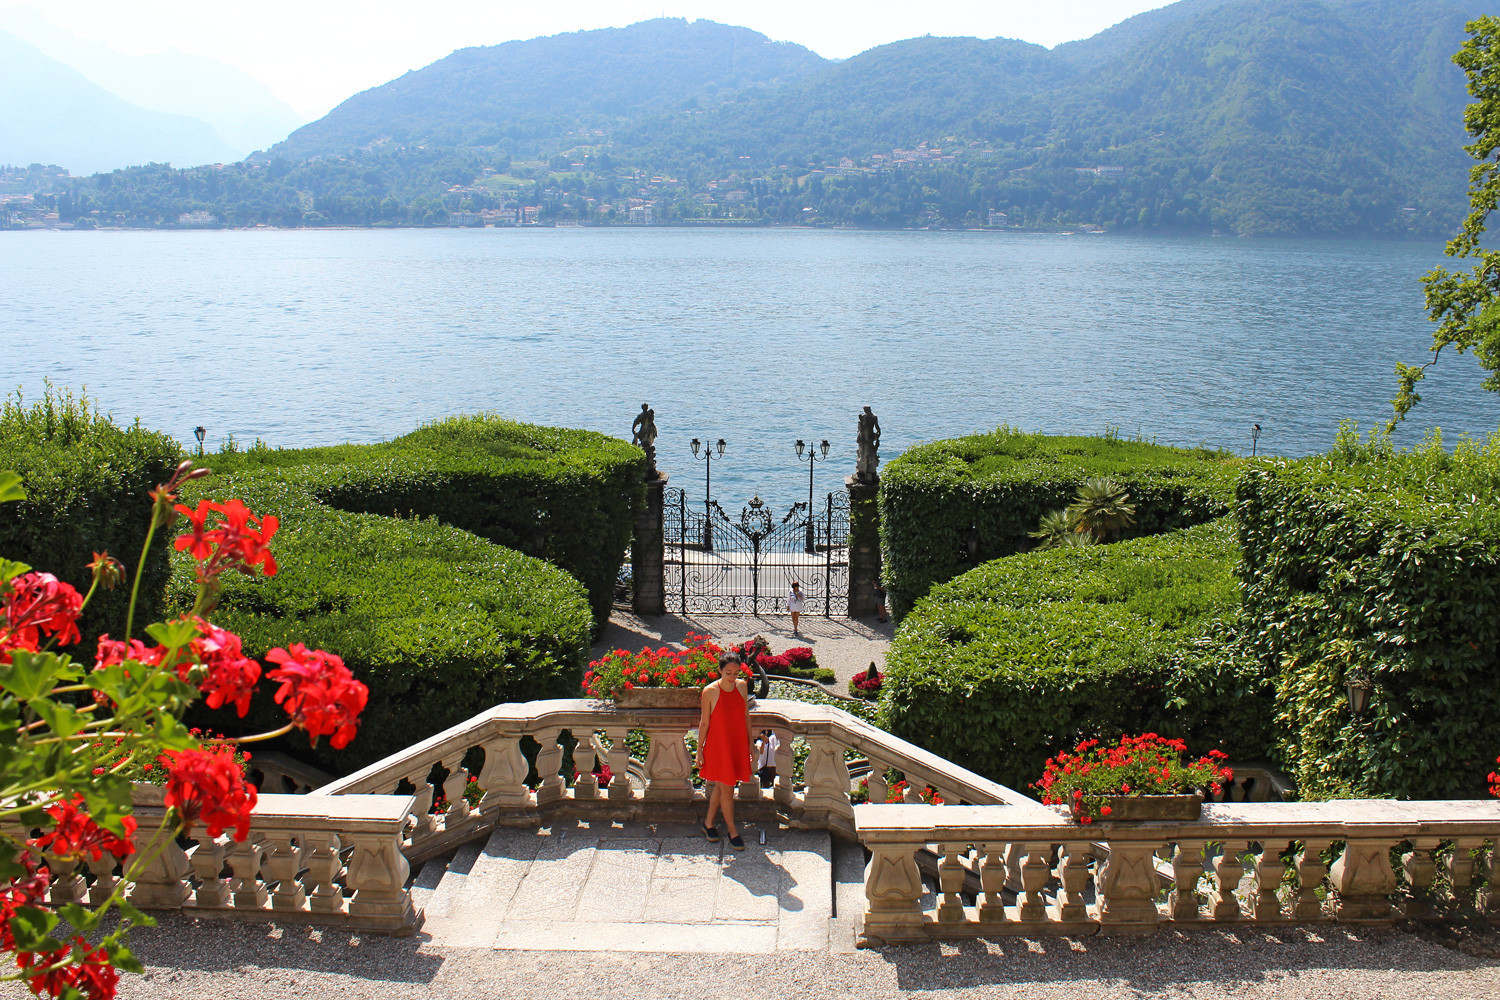 A WEEKEND AT LAKE COMO: TRAVEL GUIDE VILLA CARLOTTA